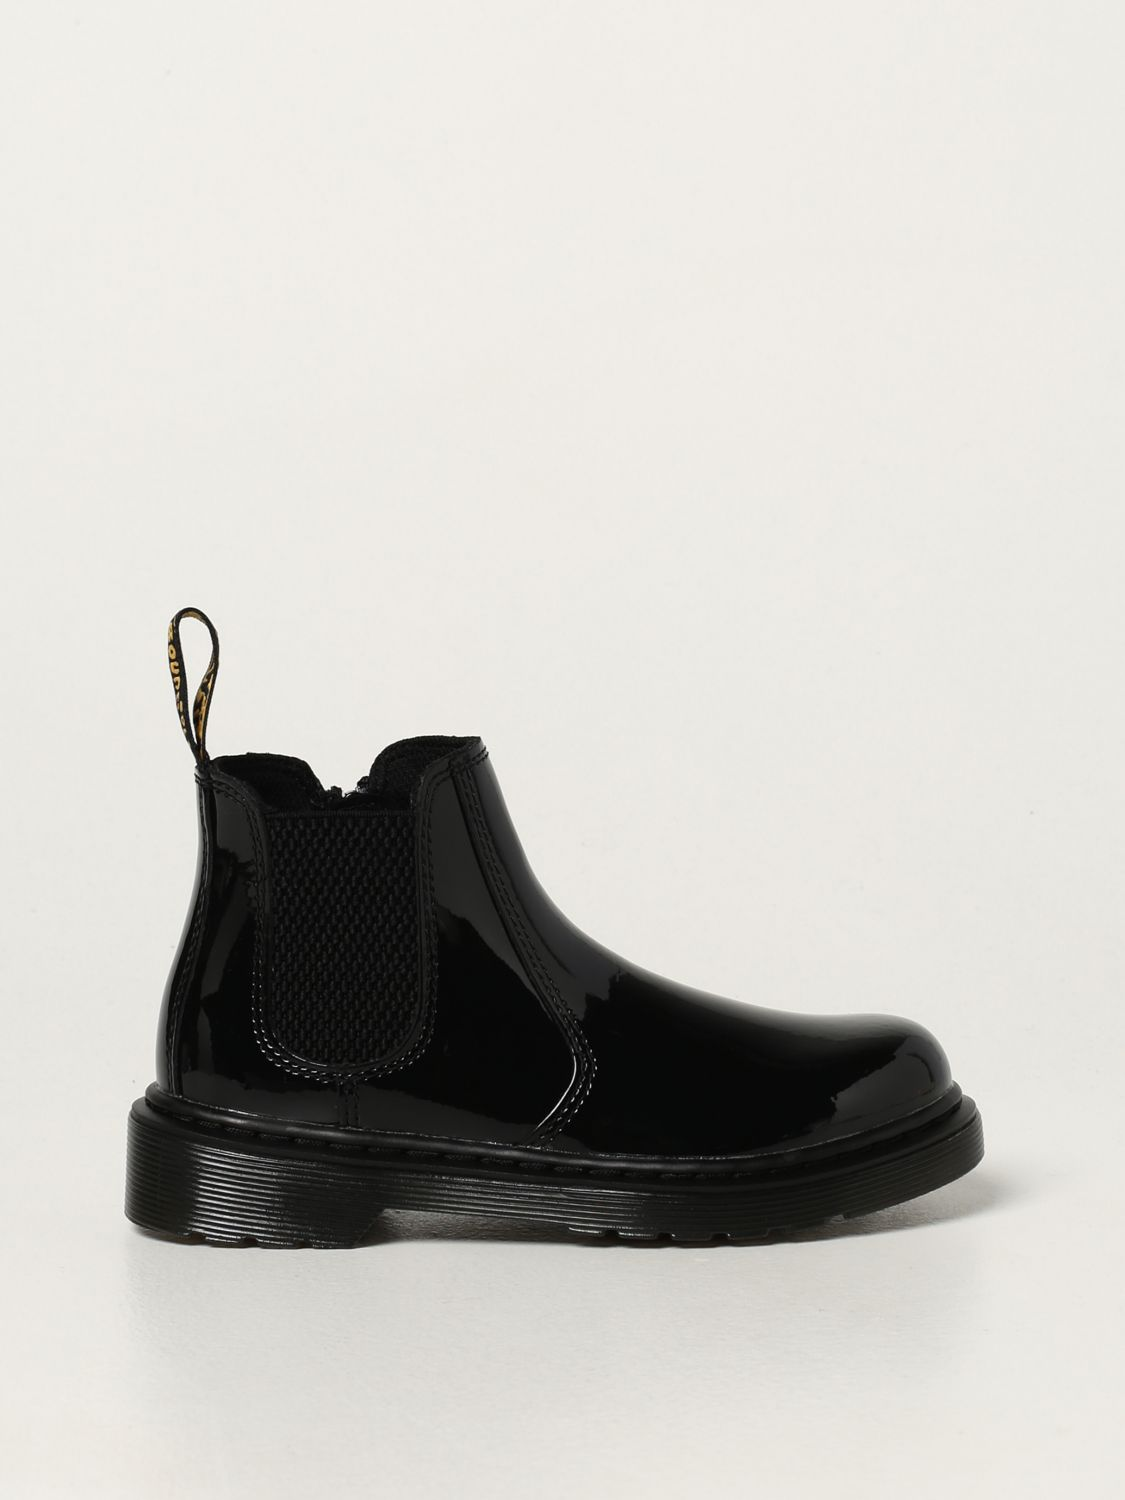 Shoes Dr. Martens: Dr. Martens 2976 Chelsea boots in patent leather black 1